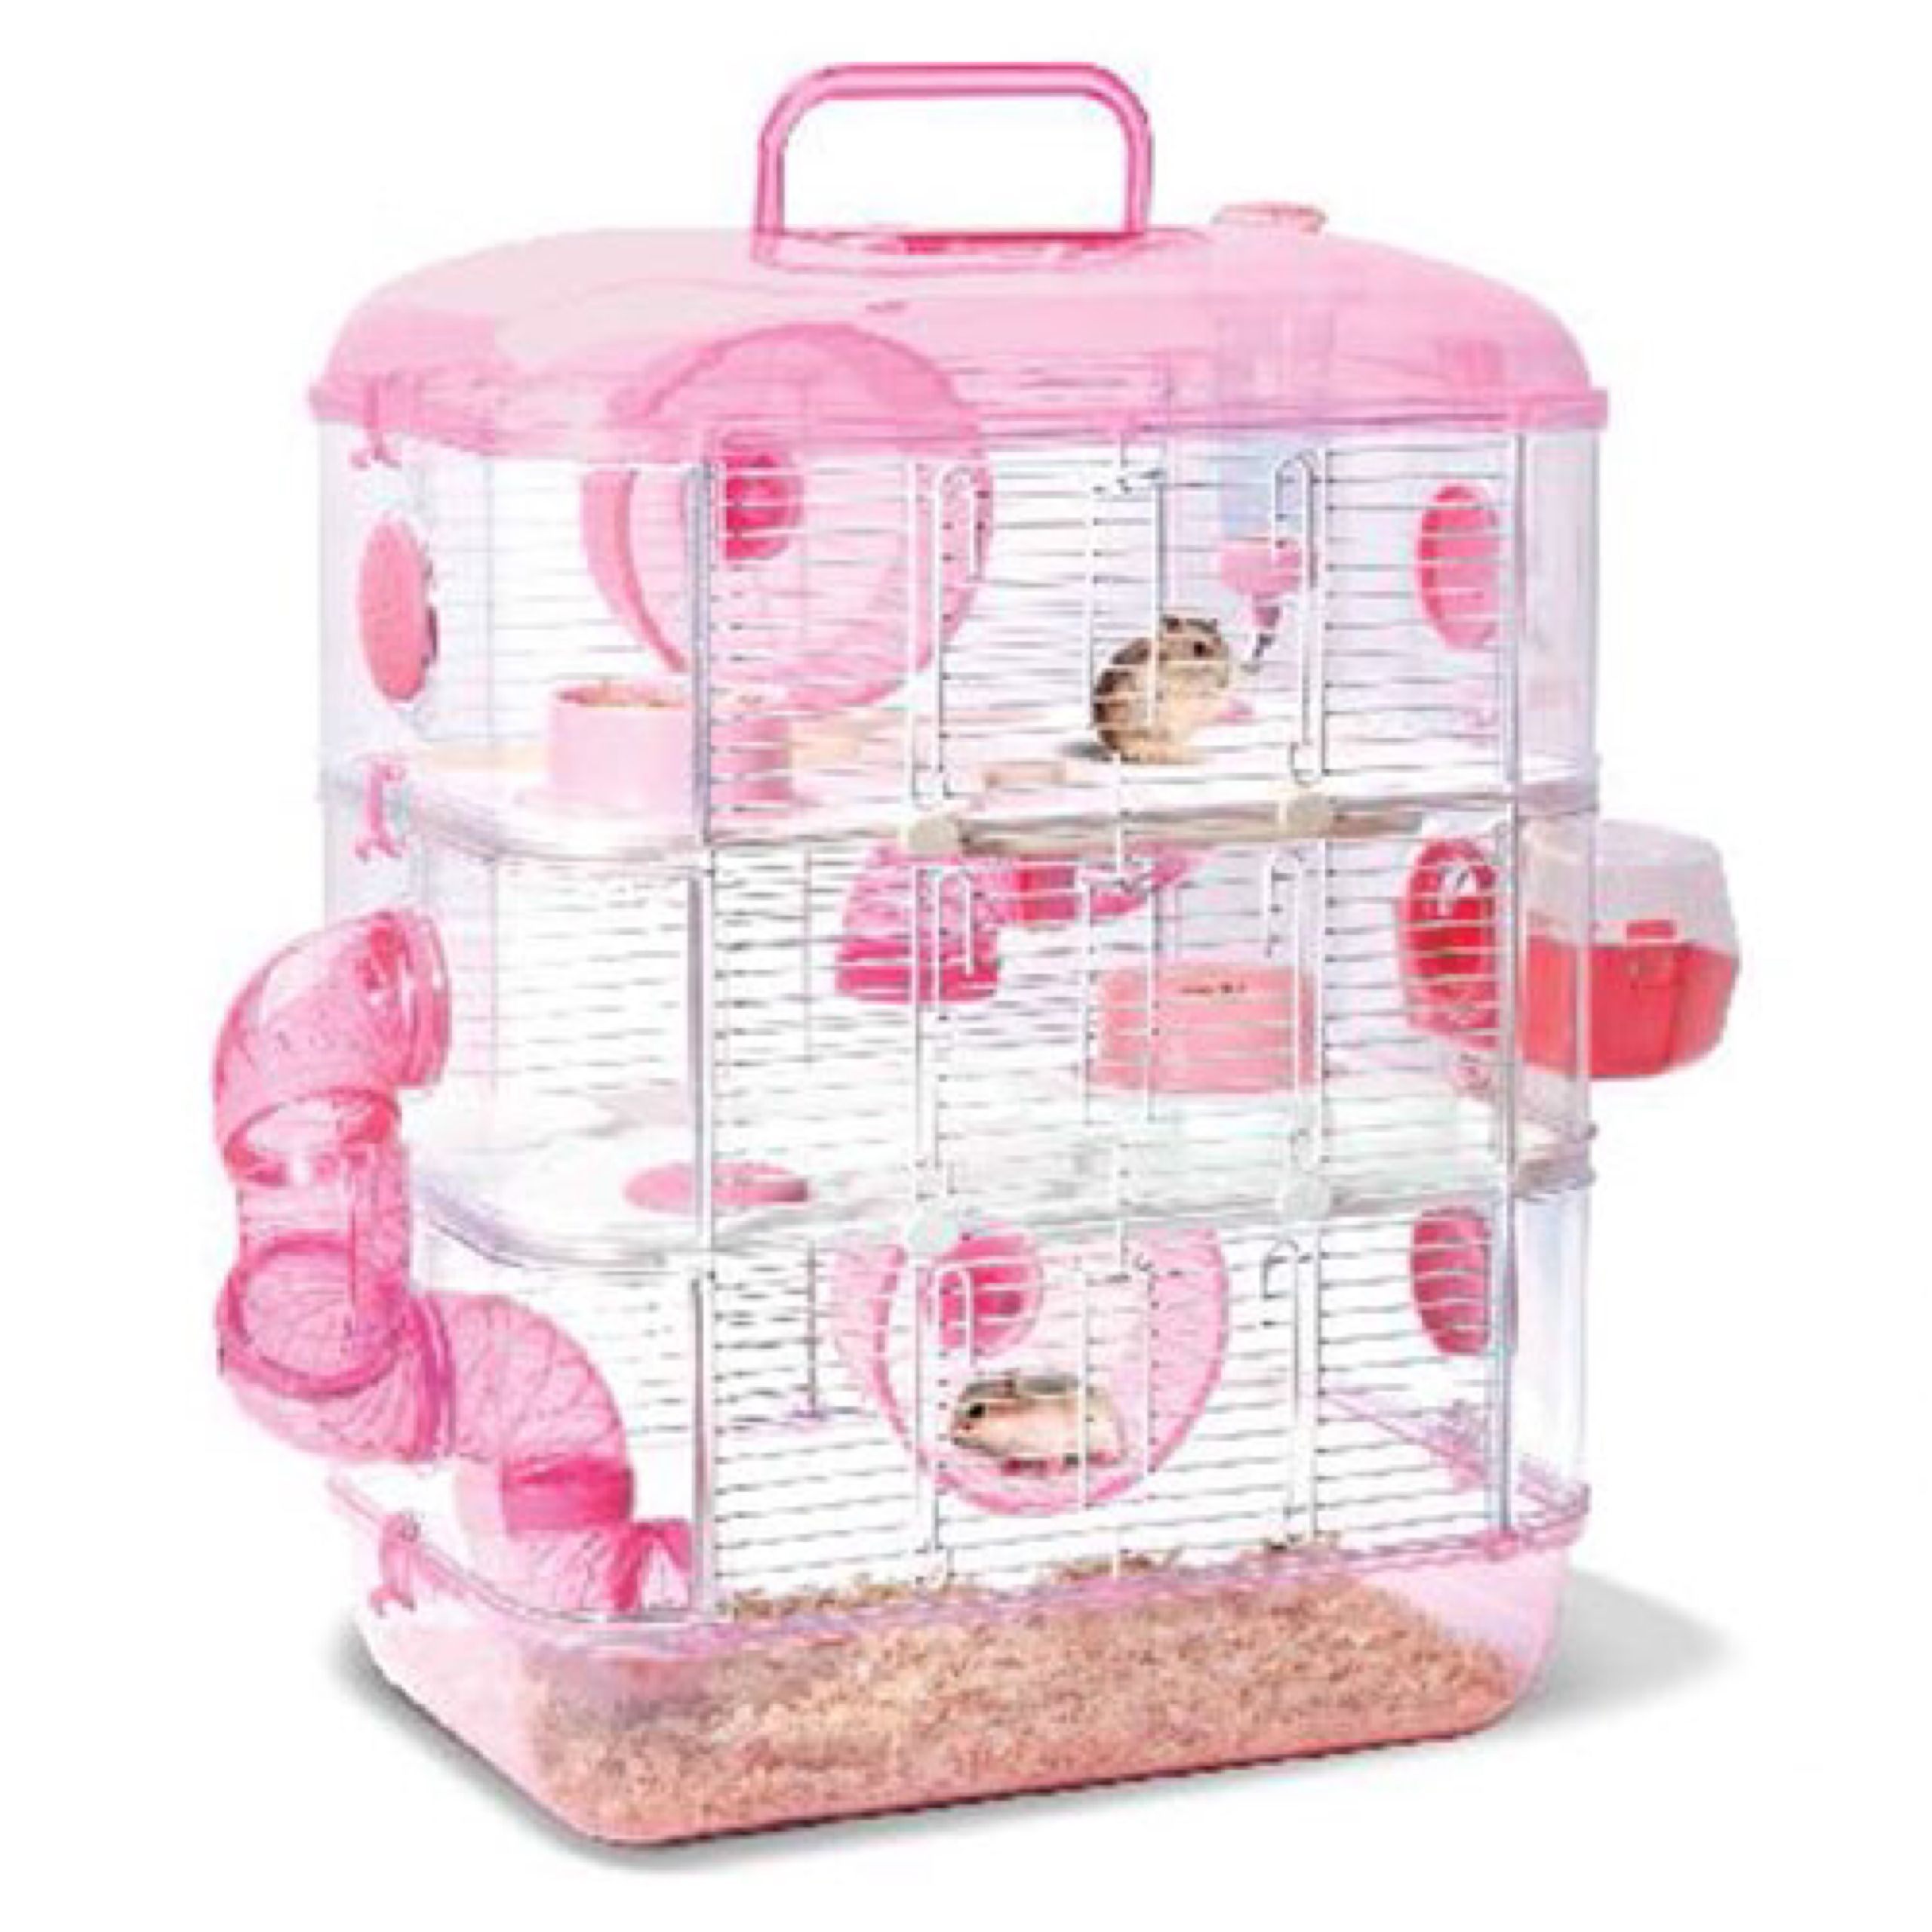 Jolly 3 Storey Crystal Hamster Cage In Pink Www Nekojam Com Fancy Hamster Hamster House Hamster Diy